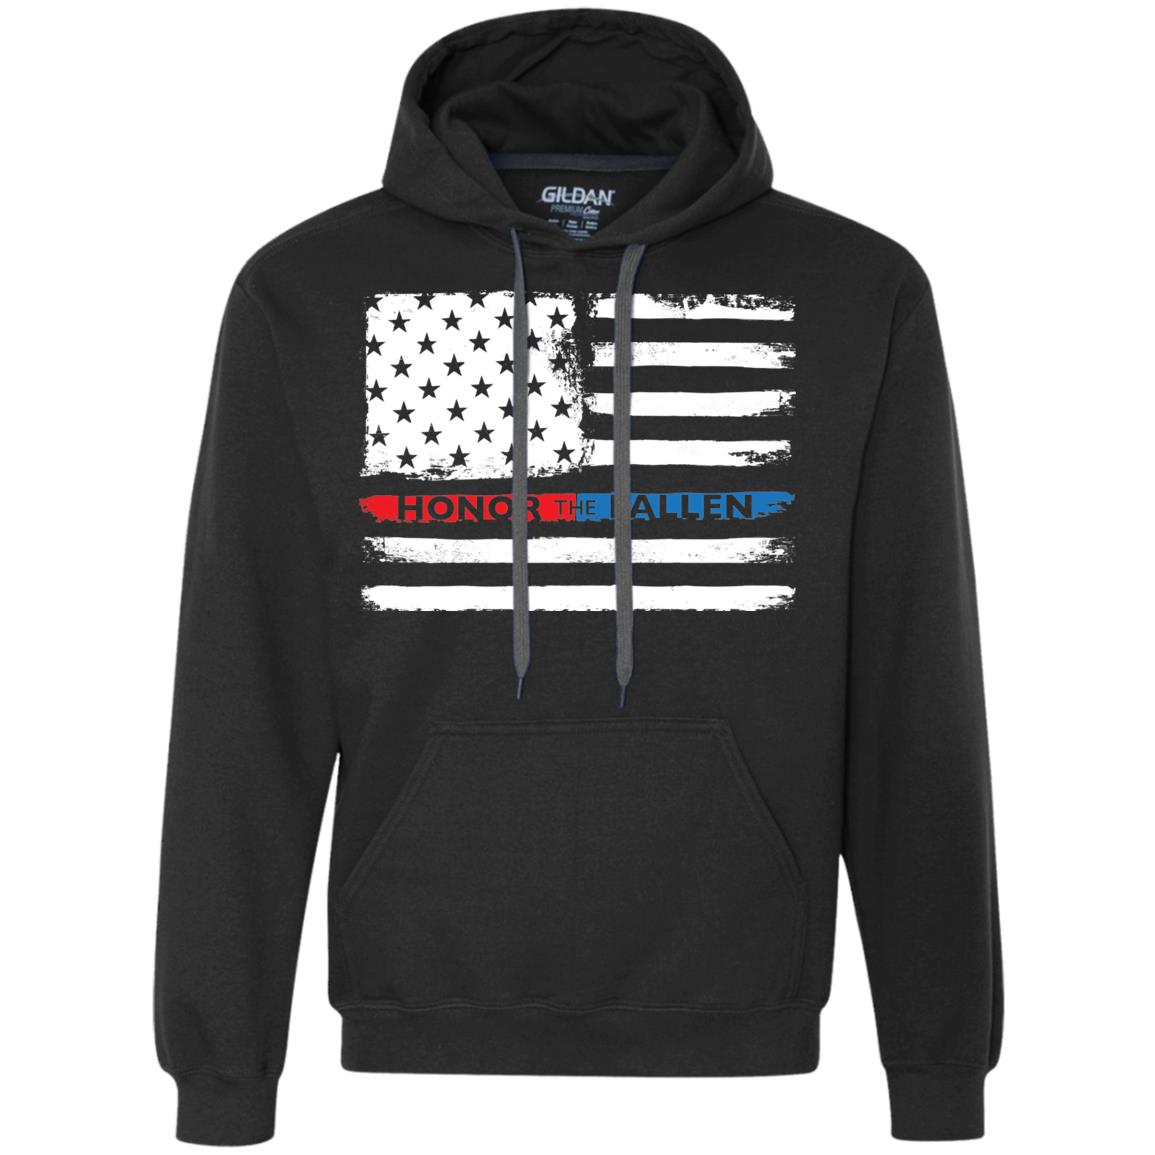 Honor the Fallen - Unisex Gildan Heavyweight Pullover Fleece Sweatshirt